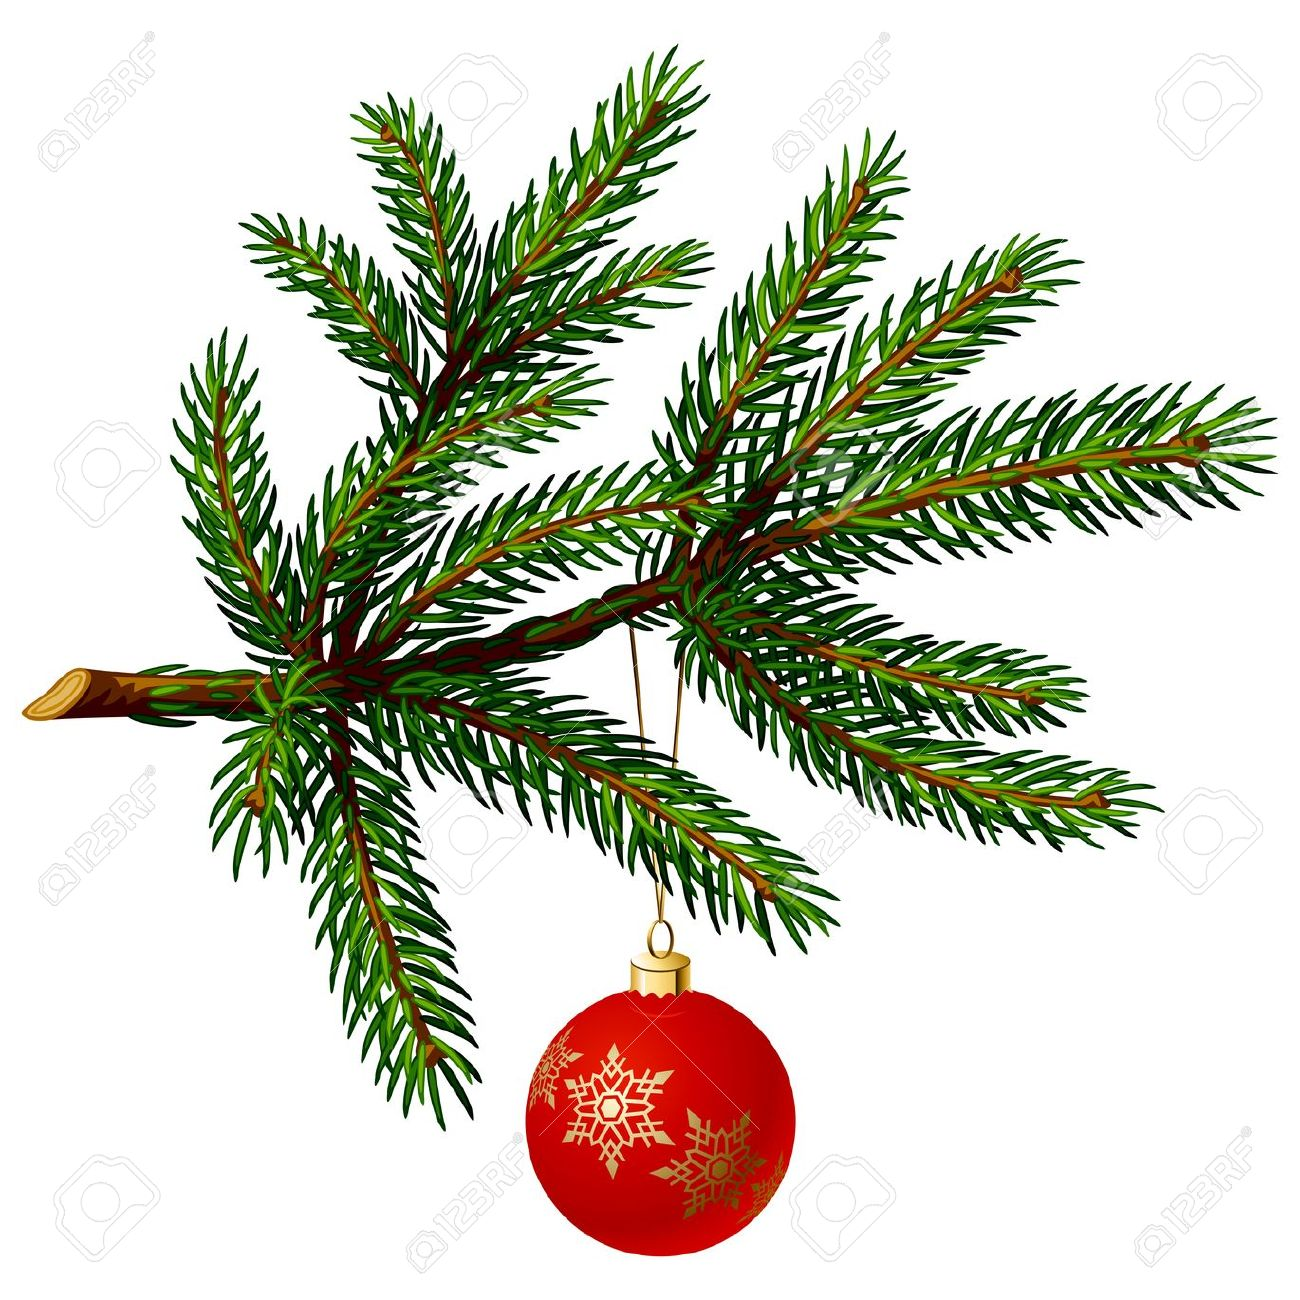 Pine Tree Branch With Christmas Ball On White Background. Vector.